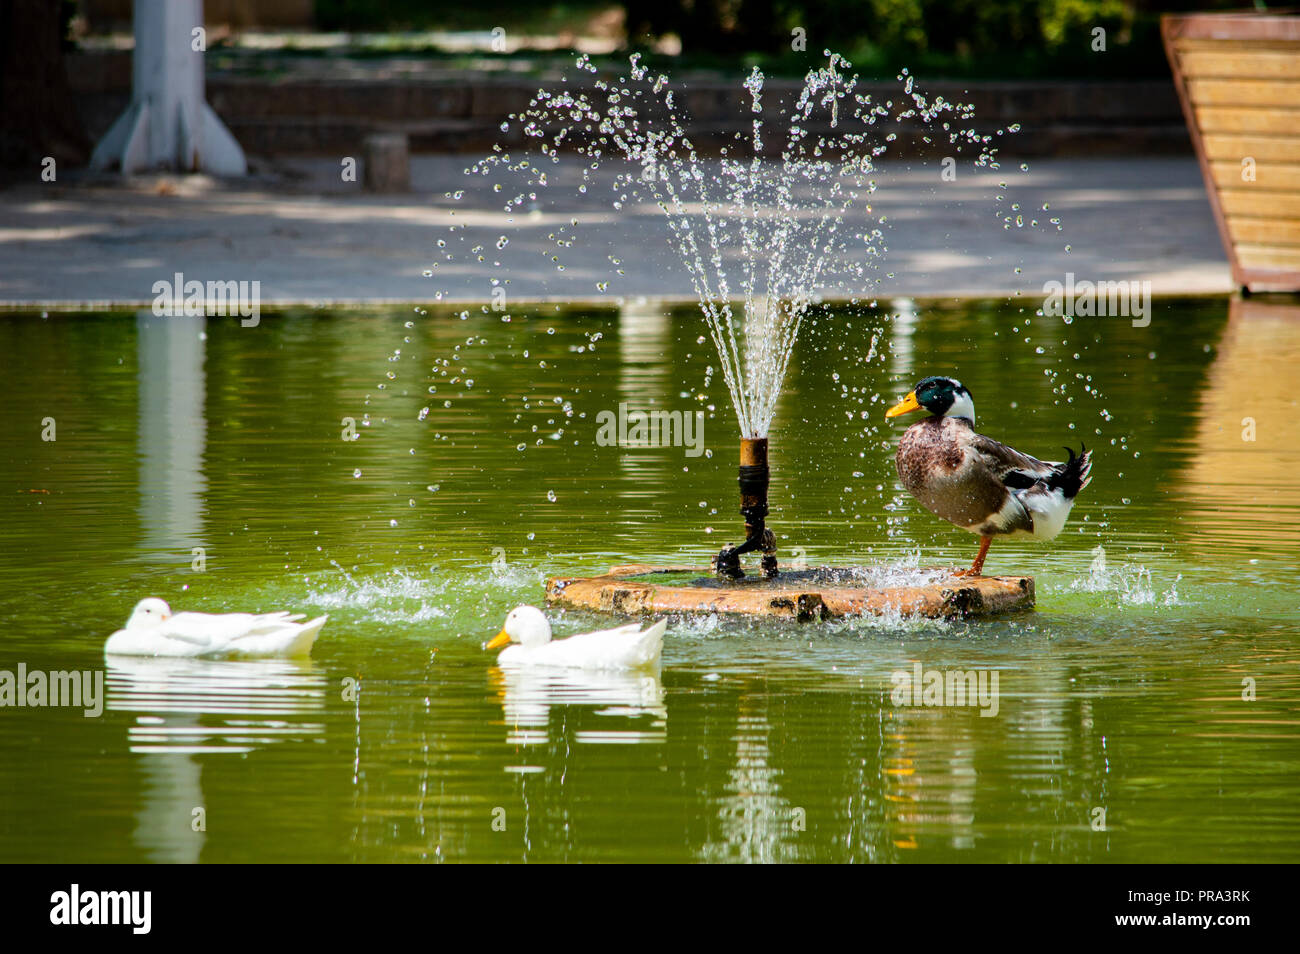 Ducks bathing in a pond - Stock Image